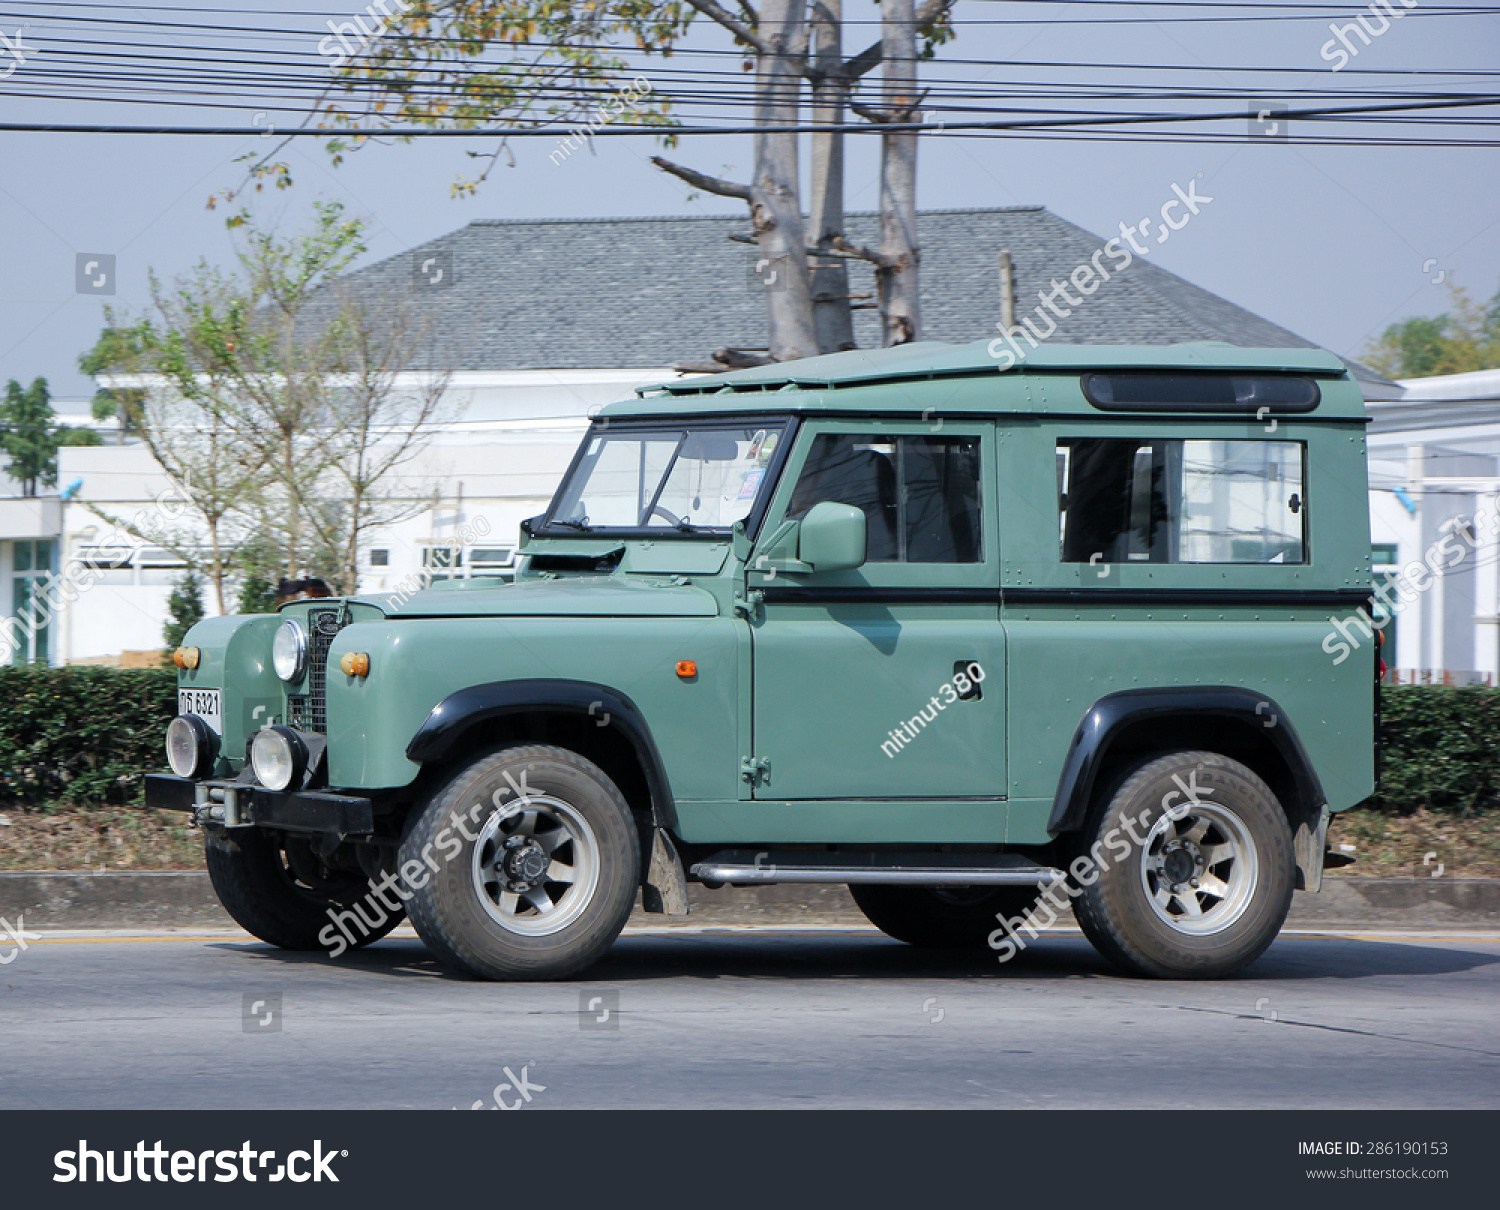 chiangmai thailand june 6 2015 old private car land rover mini truck photo at road. Black Bedroom Furniture Sets. Home Design Ideas